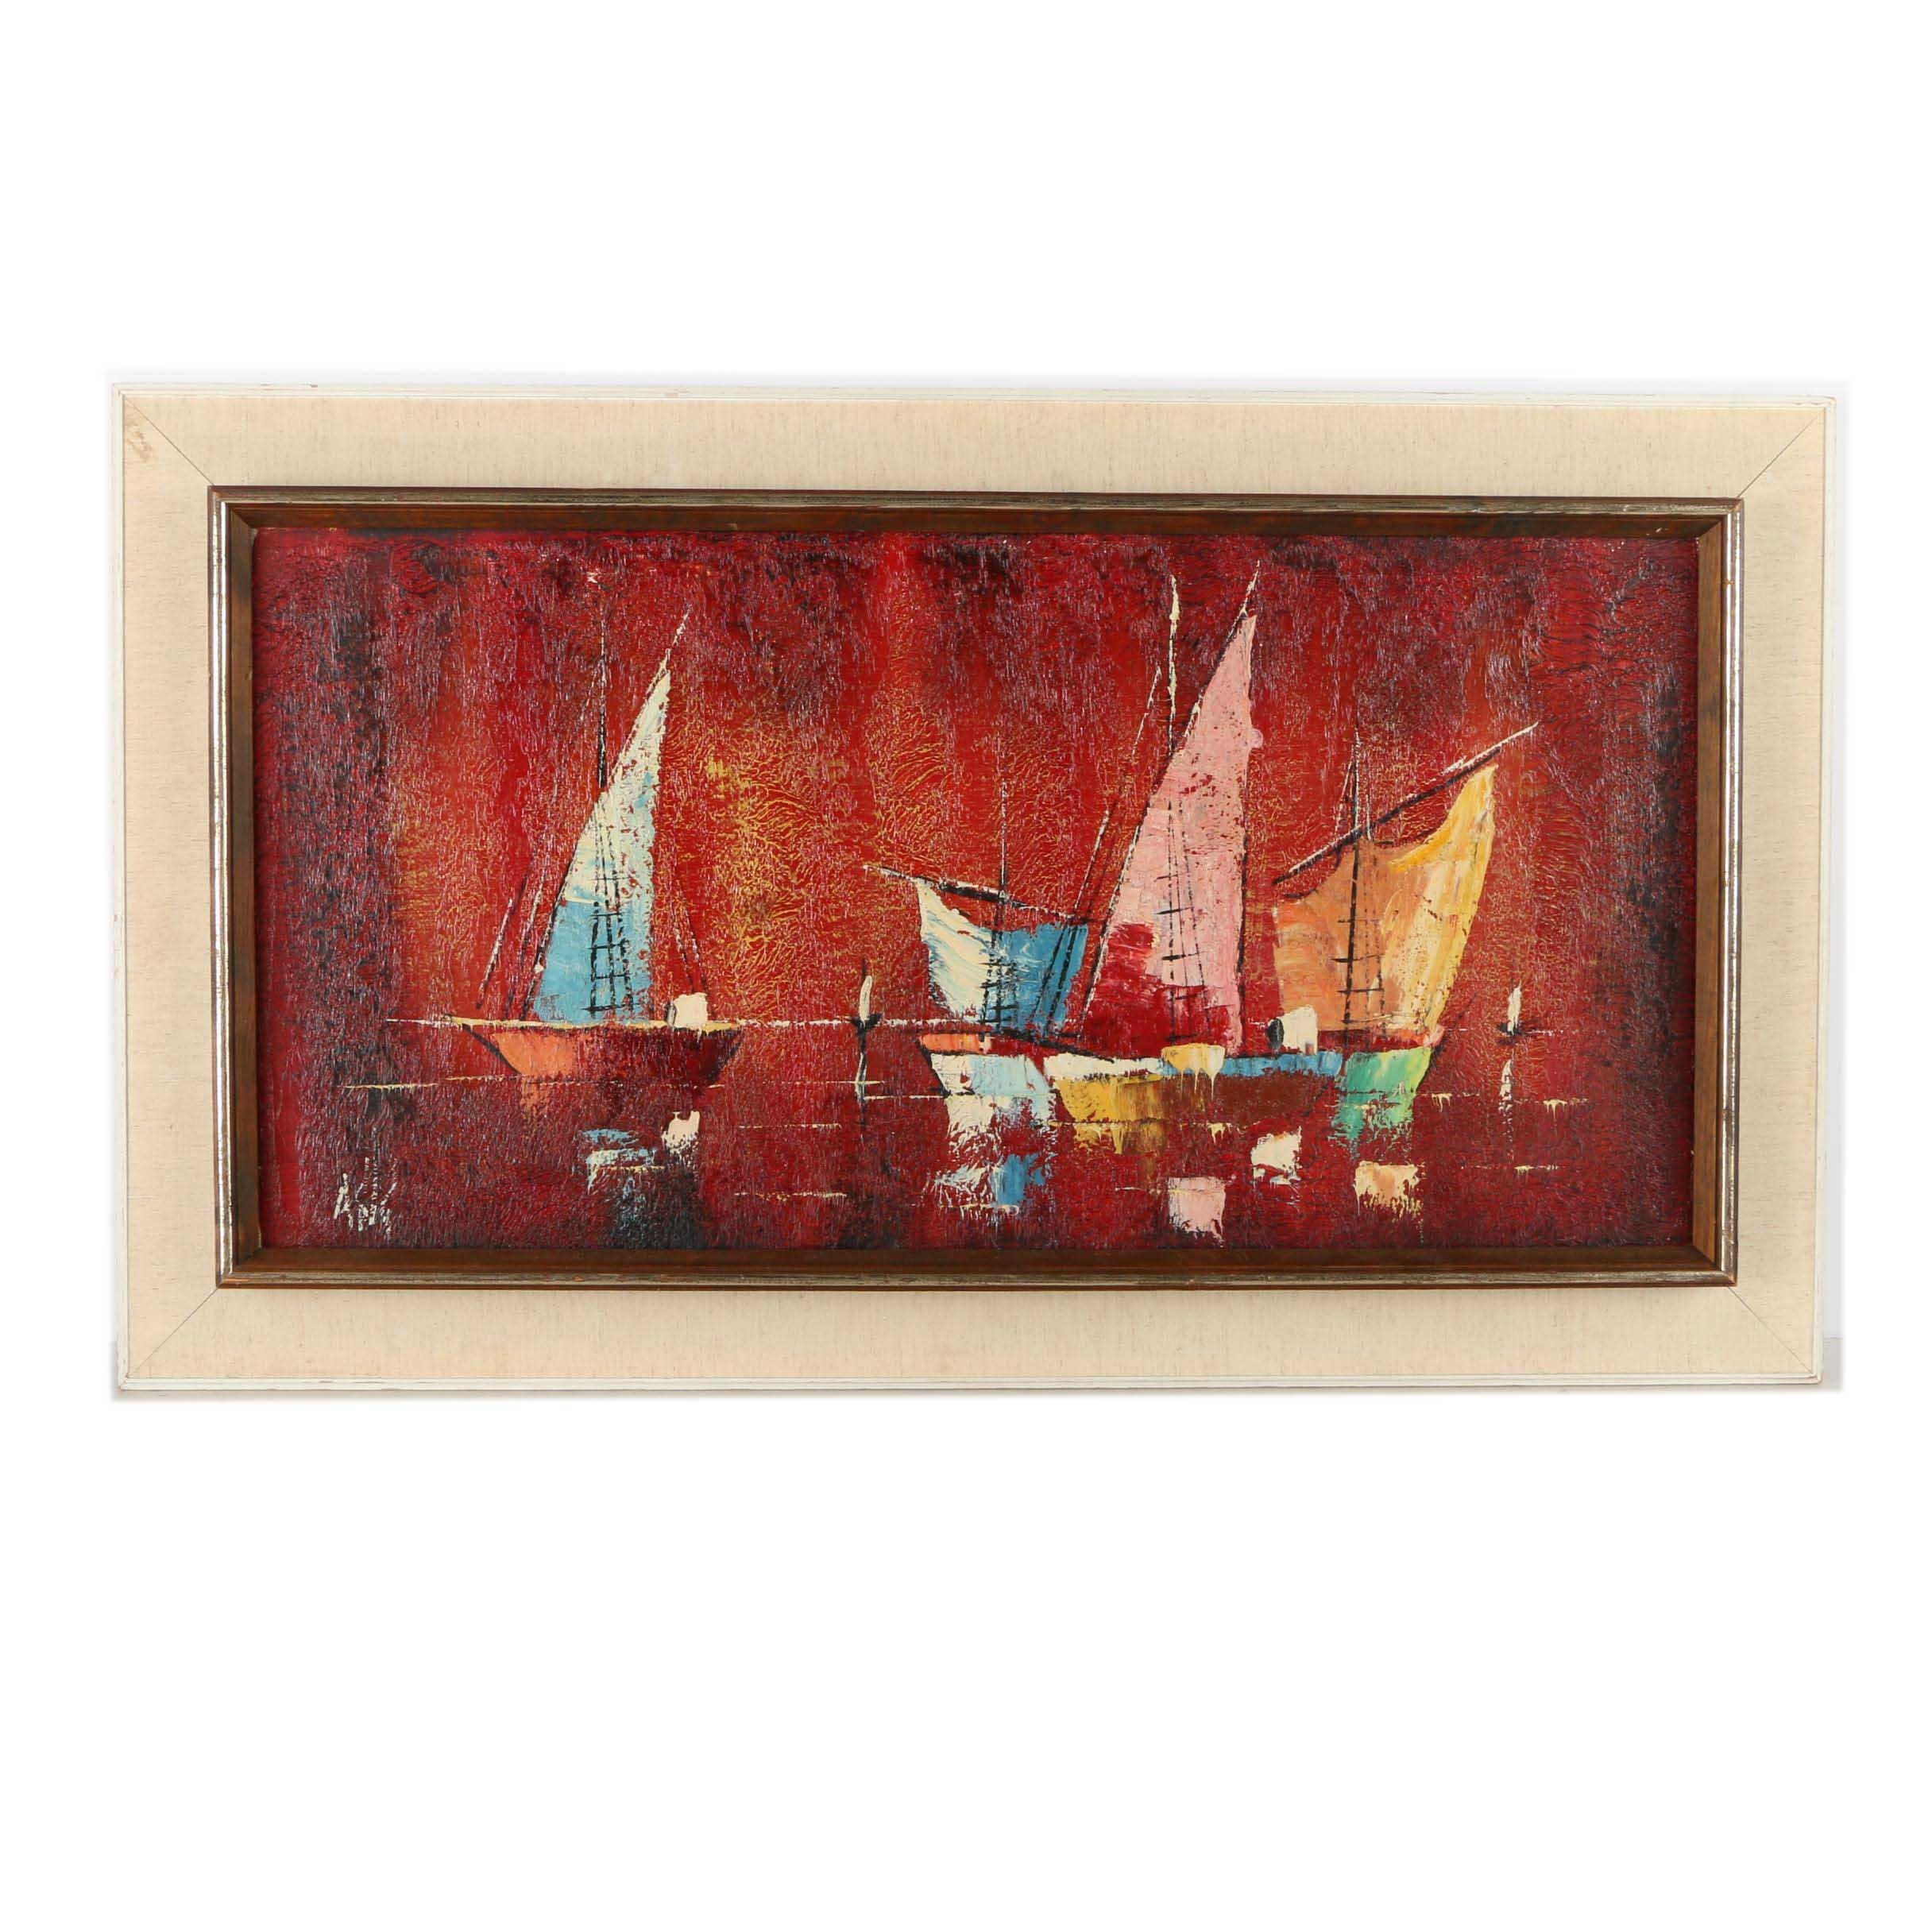 Asig Oil Painting of Sailboats